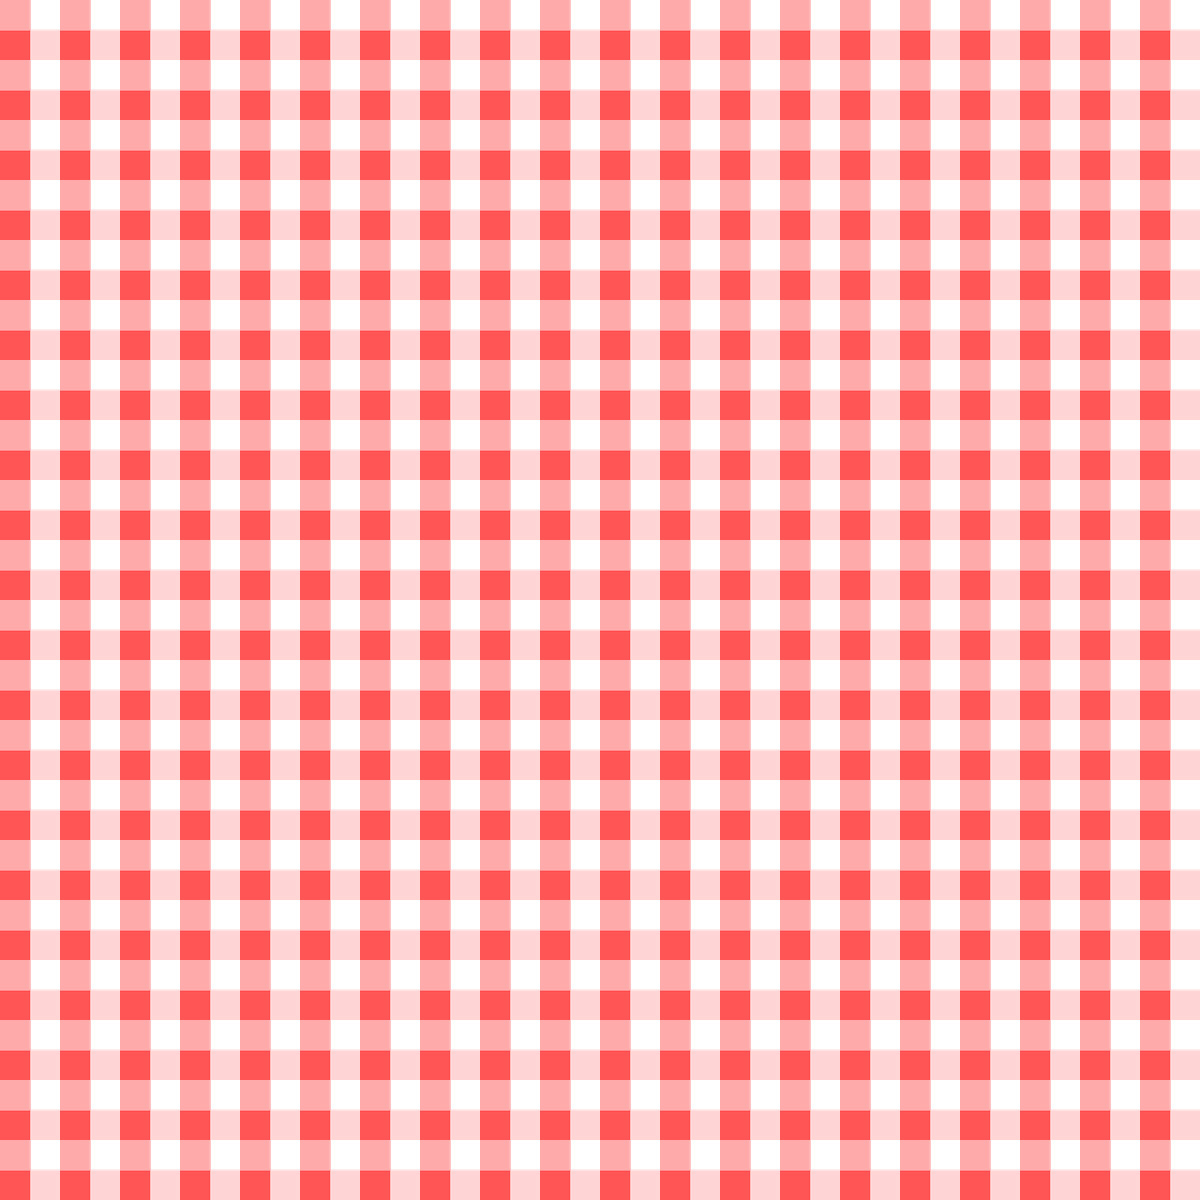 29+] Red and White Checkered Wallpaper on WallpaperSafari